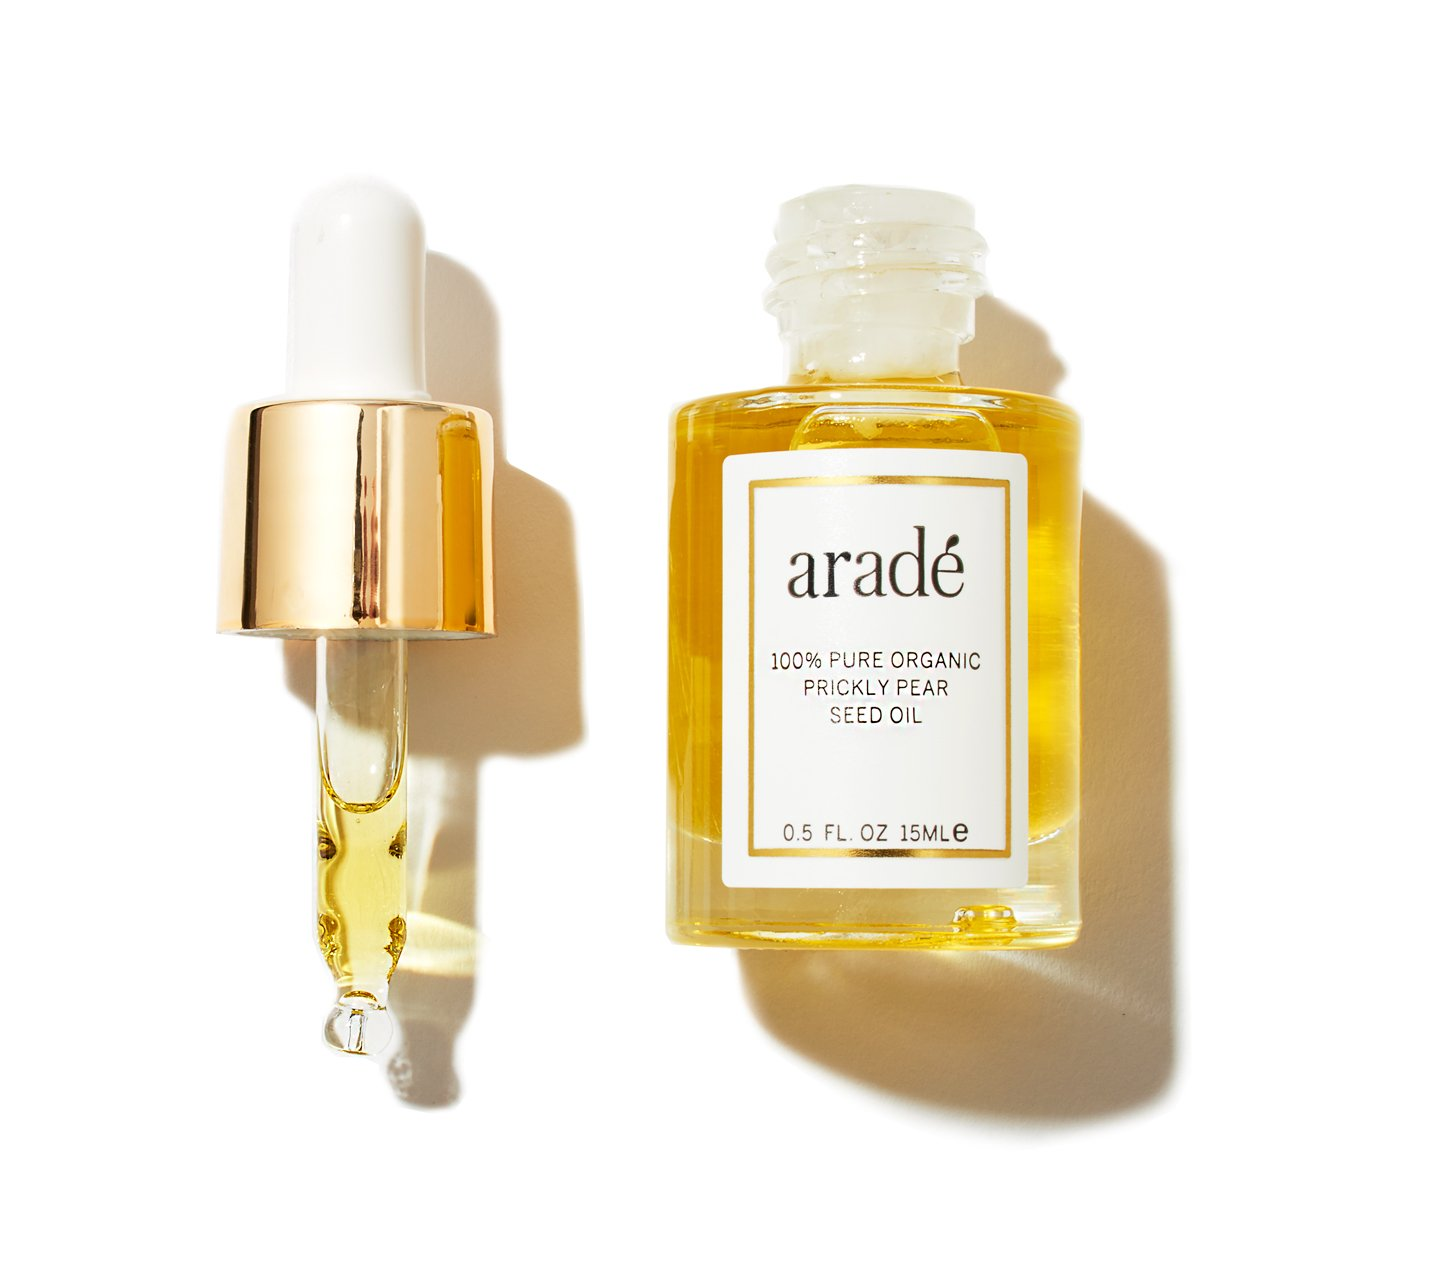 Prickly Pear Seed Oil 0.5 oz by Aradé Beauty